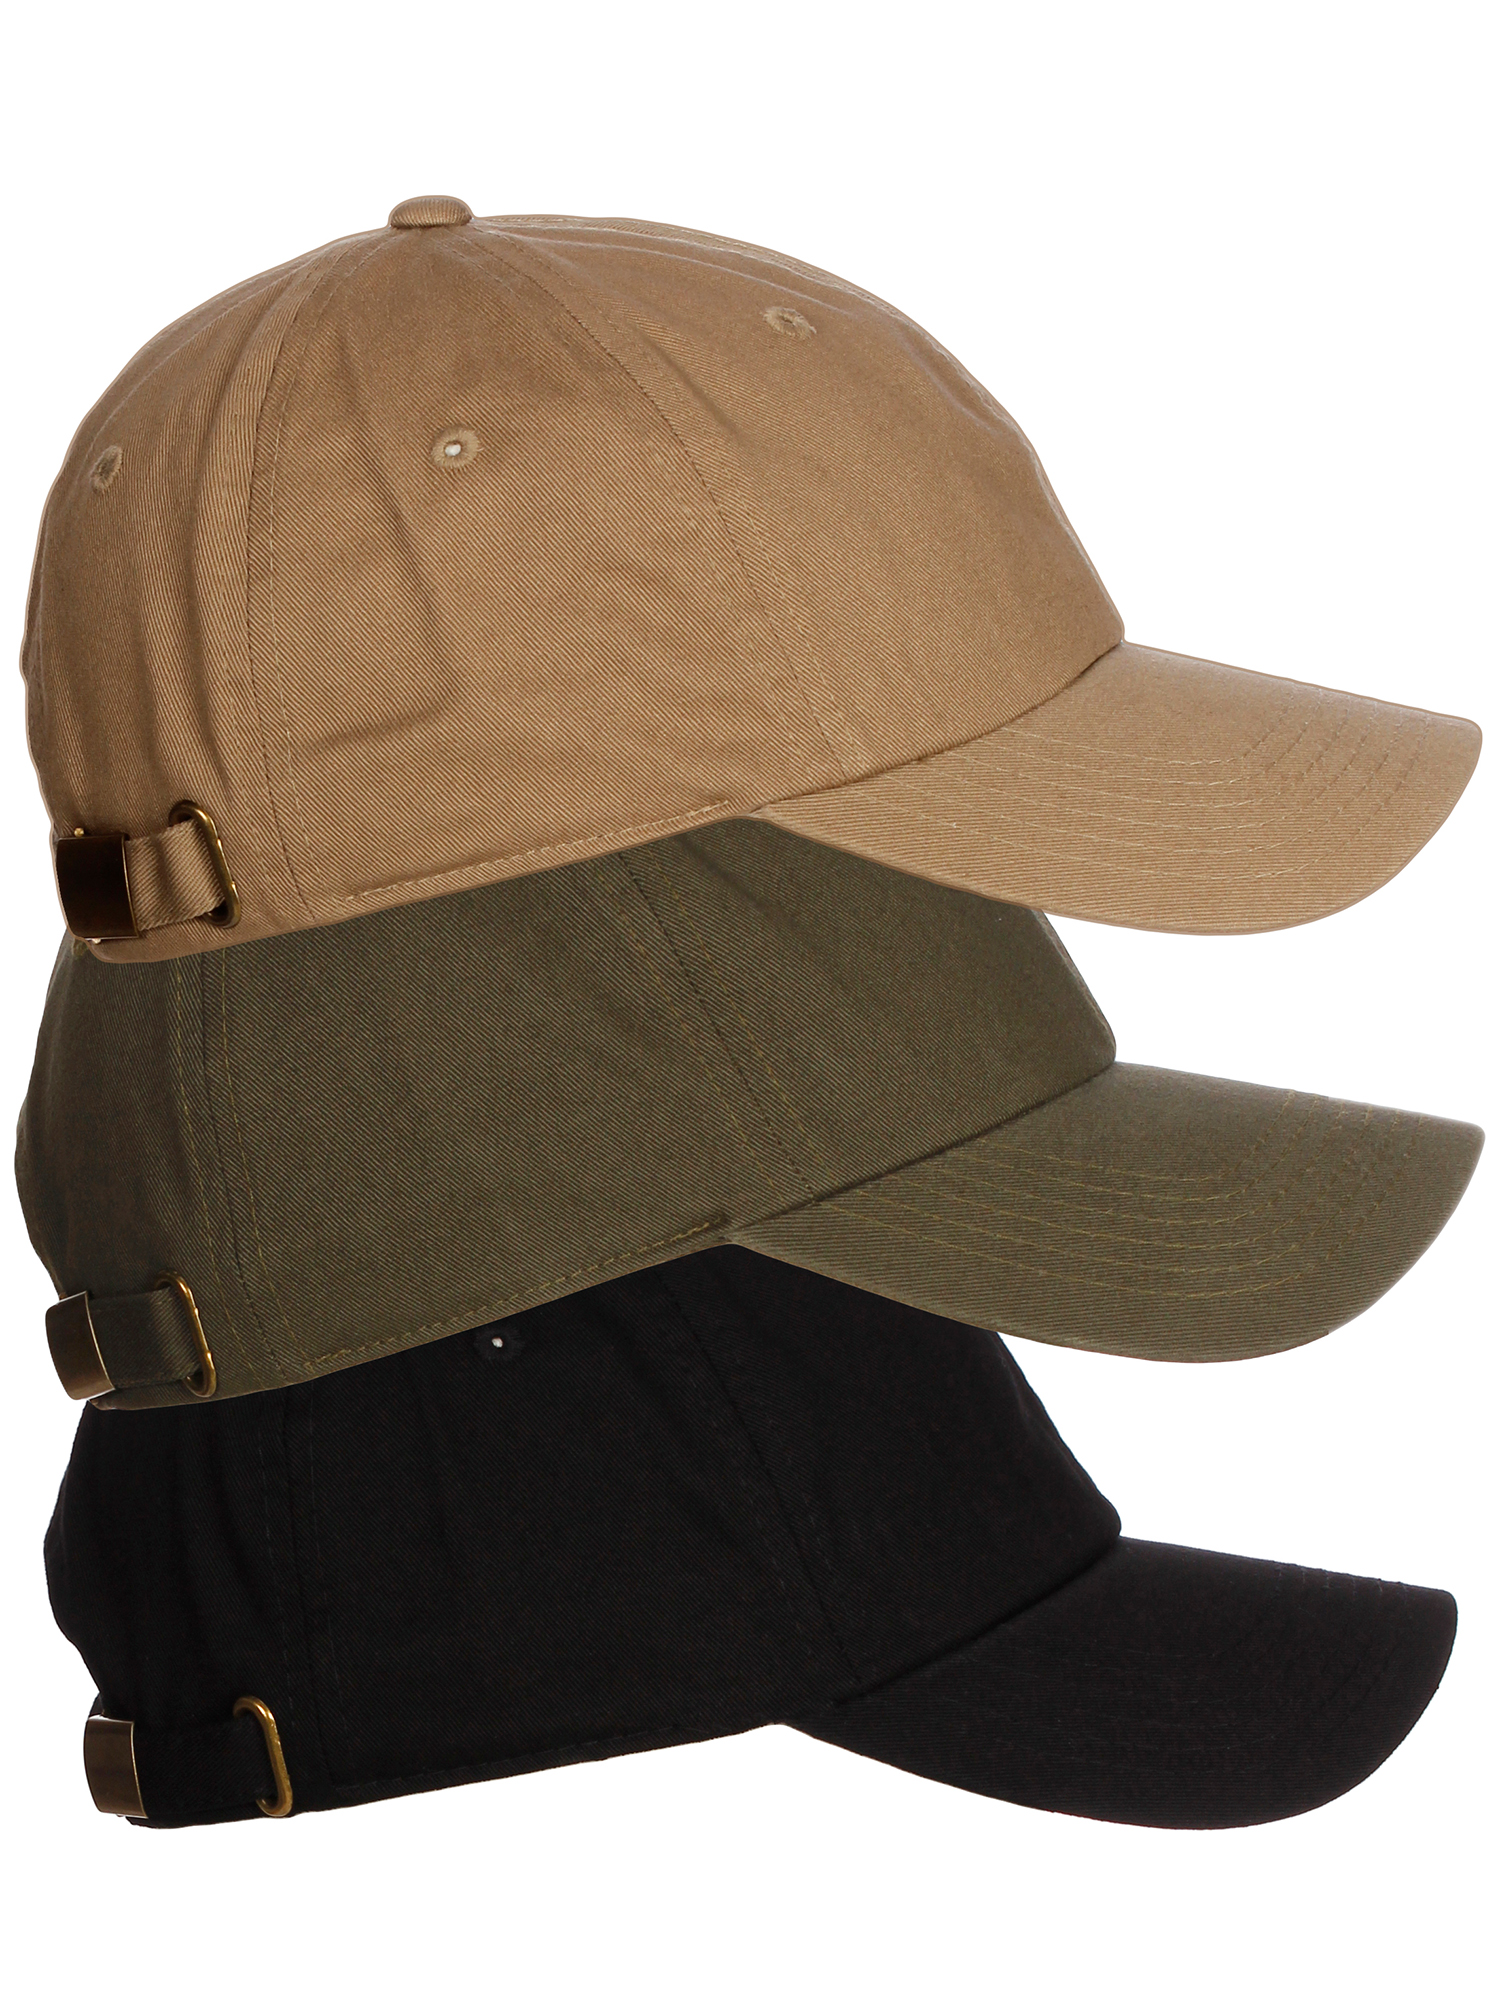 American Cities Plain Dad Hat 100 Cotton Unstructured Unisex Cap Adj Strap  3pk - Black Olive Khaki. About this product. Picture 1 of 9  Picture 2 of 9  ... ce177151c762